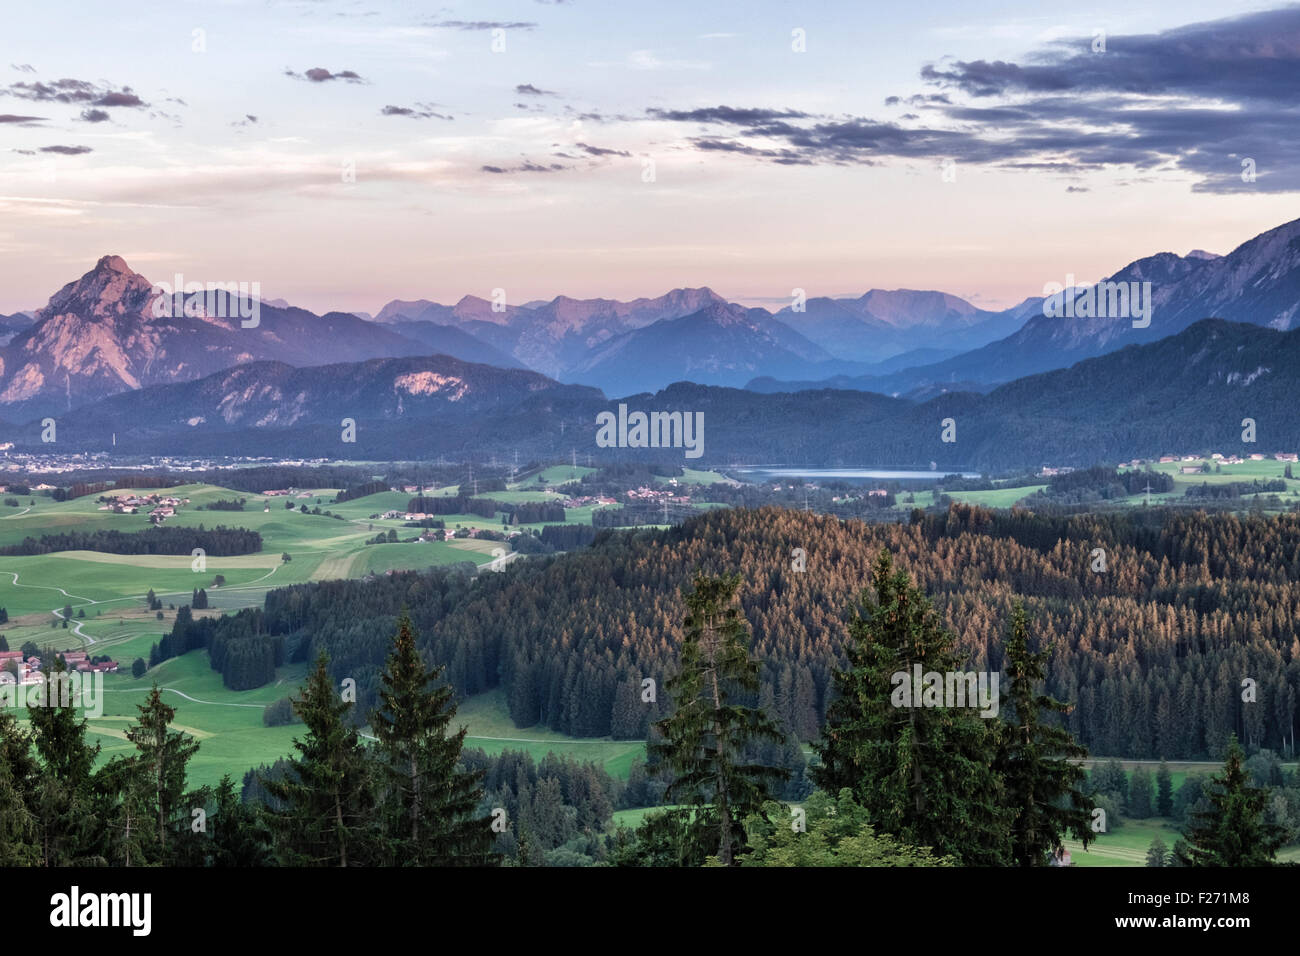 Scenic landscape View across valley, forest and farm lands towards Bavarian Alps, Eisenburg, Bavaria, Germany - Stock Image